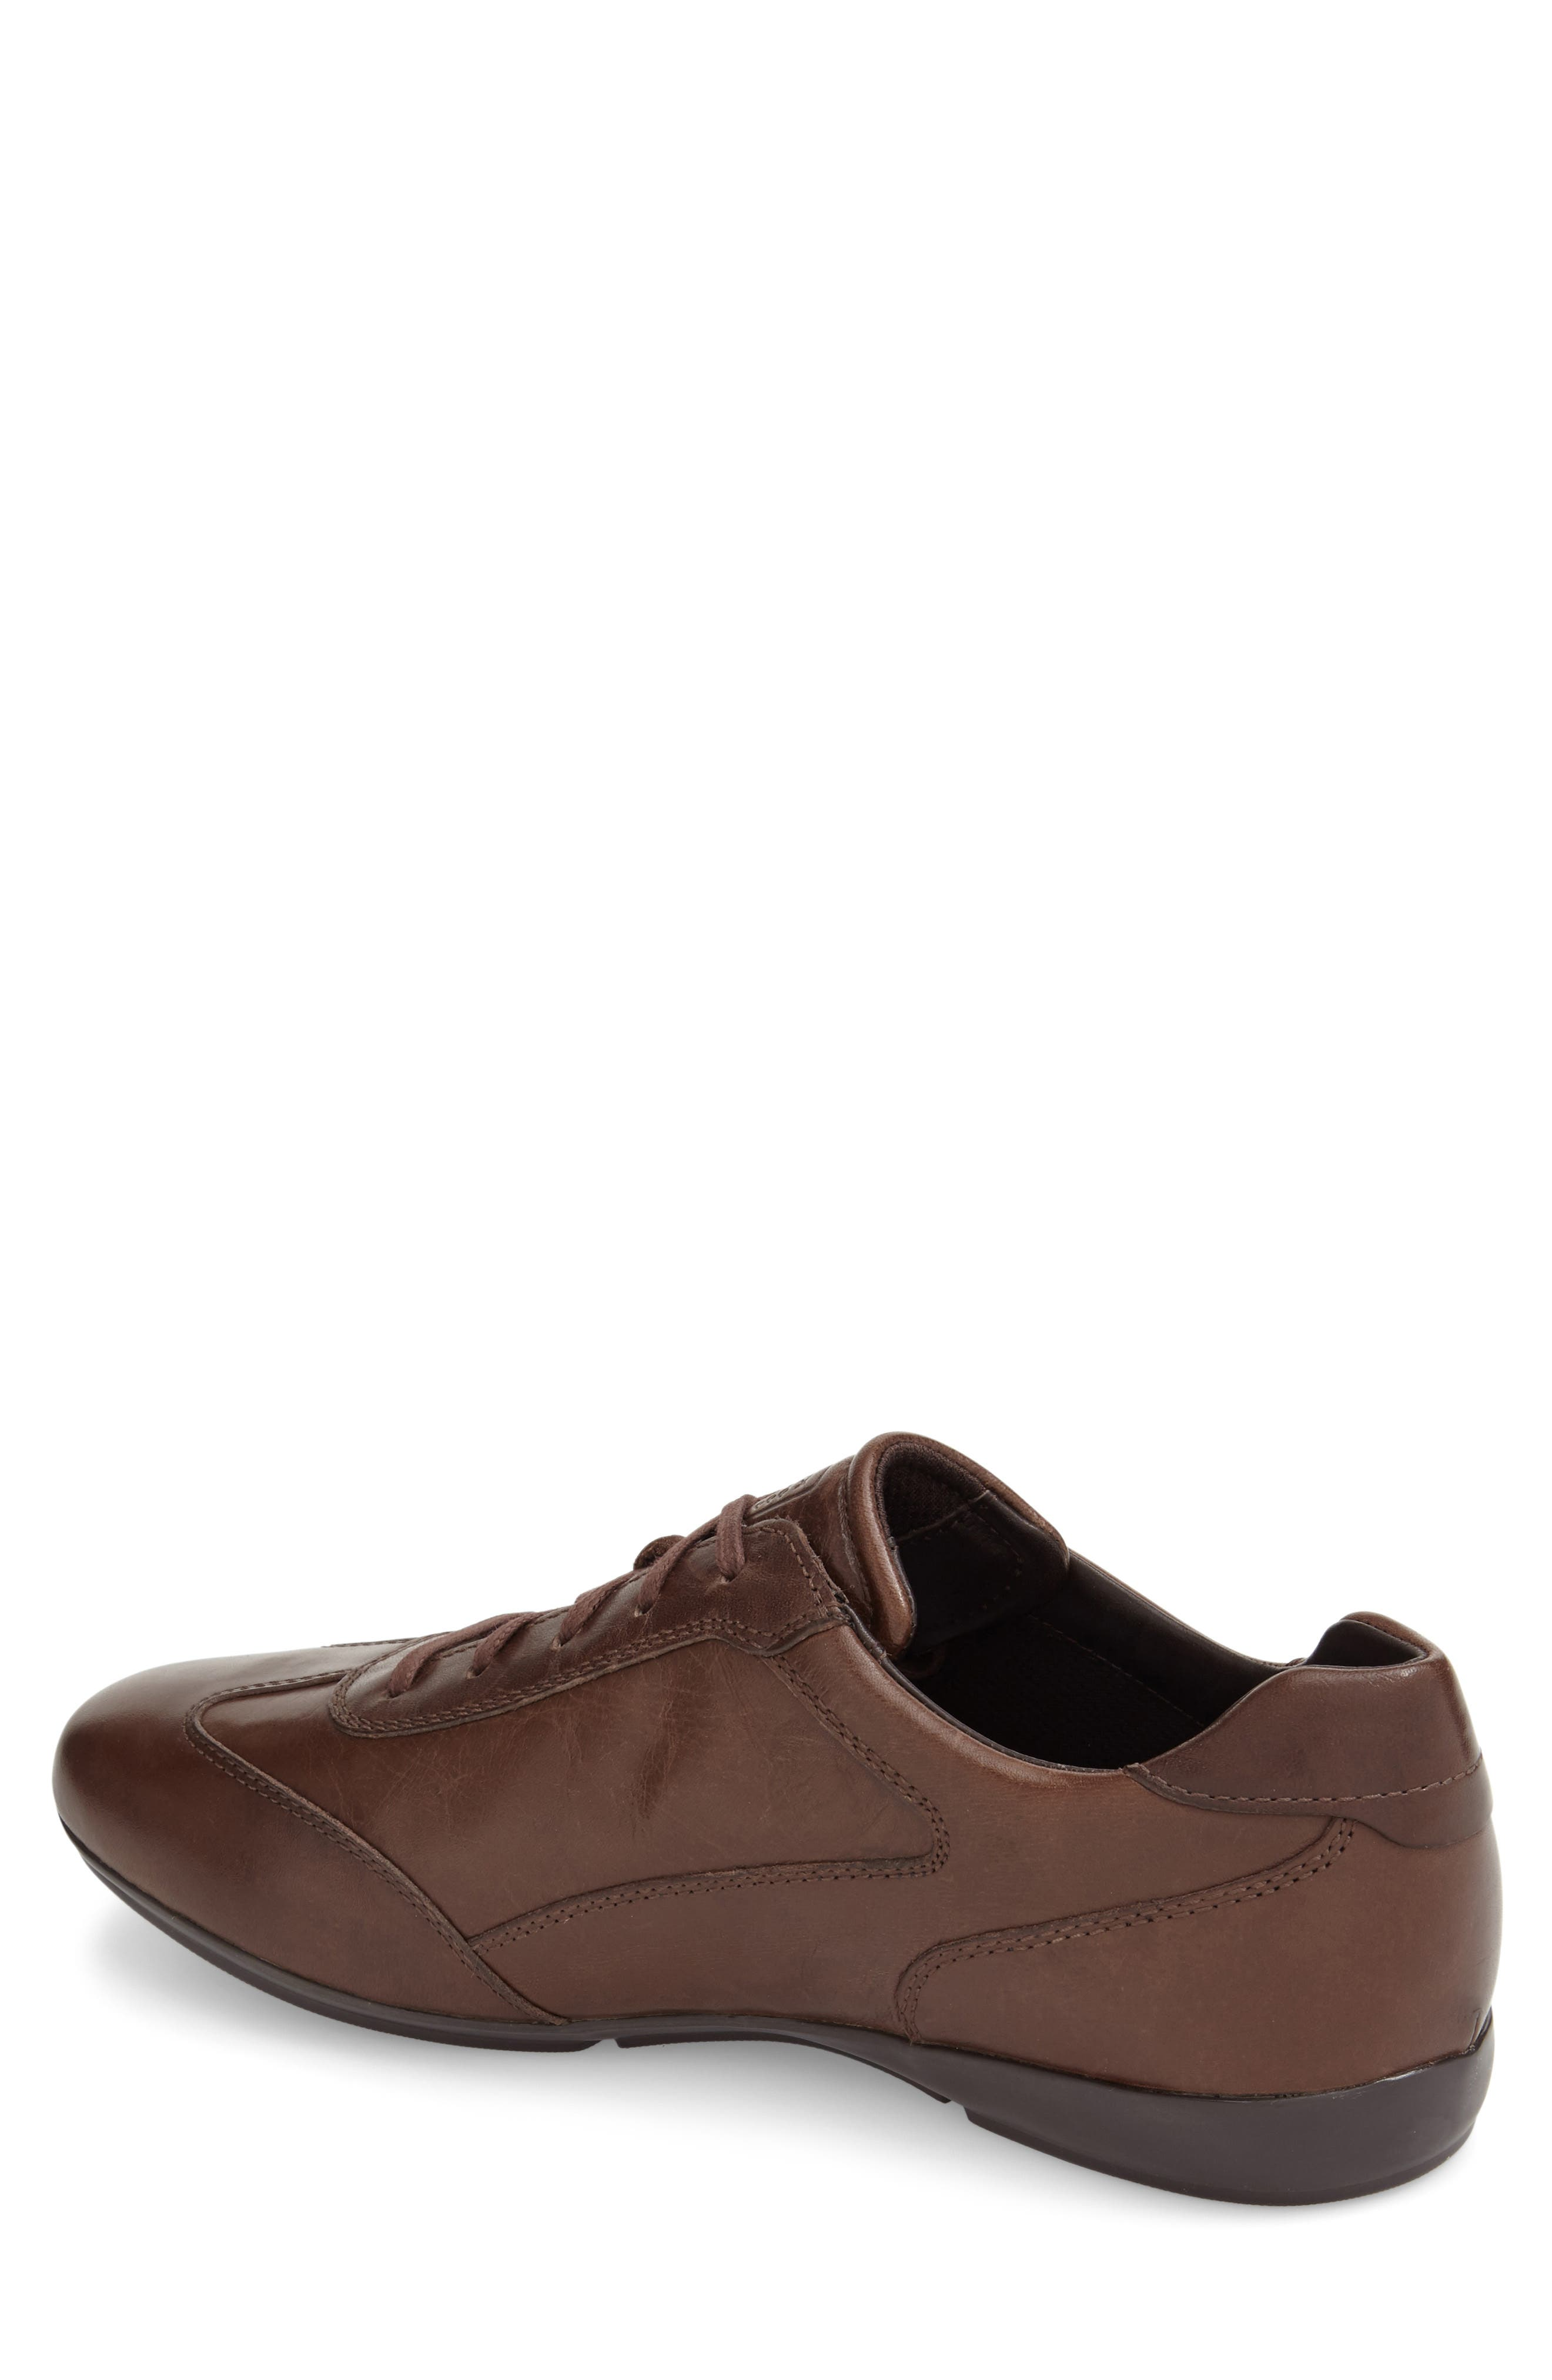 Wing Tip Oxford,                             Alternate thumbnail 3, color,                             200